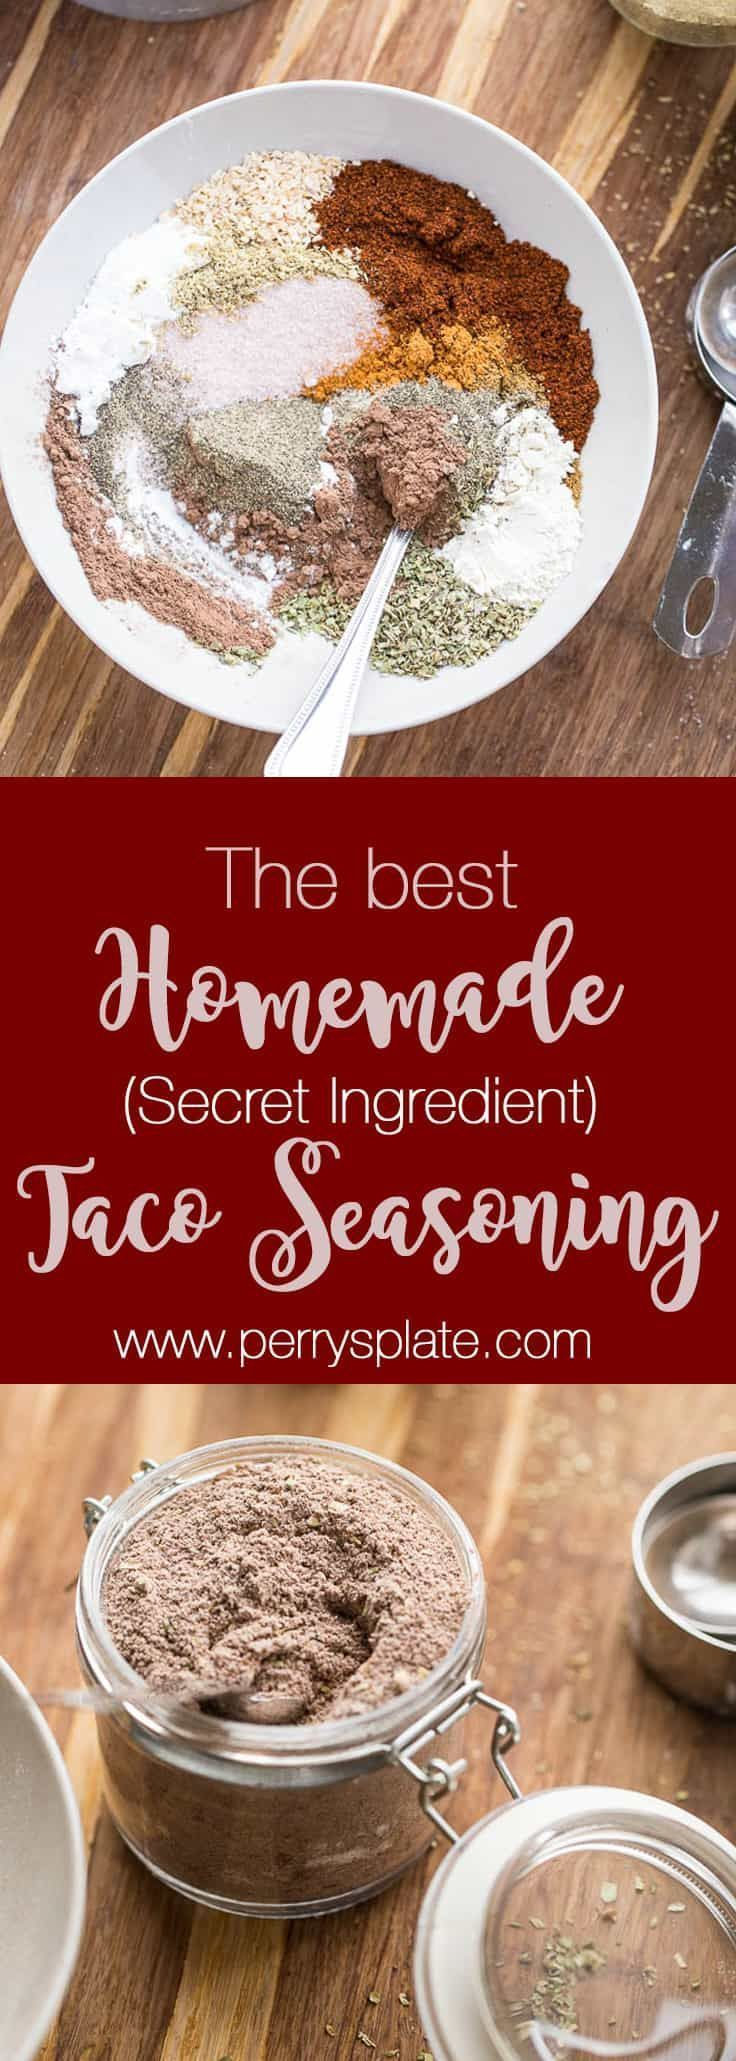 The BEST homemade taco seasoning recipe out there. Honest. And you can tweak it to make it paleo, Whole30 compliant, or keto/low-carb friendly! perrysplate.com #tacoseasoning #homemadetacoseasoning #glutenfree #diytacoseasoning The BEST homemade taco seasoning recipe out there. Honest. And you can tweak it to make it paleo, Whole30 compliant, or keto/low-carb friendly! perrysplate.com #tacoseasoning #homemadetacoseasoning #glutenfree #diytacoseasoning The BEST homemade taco seasoning recipe out #diytacoseasoning